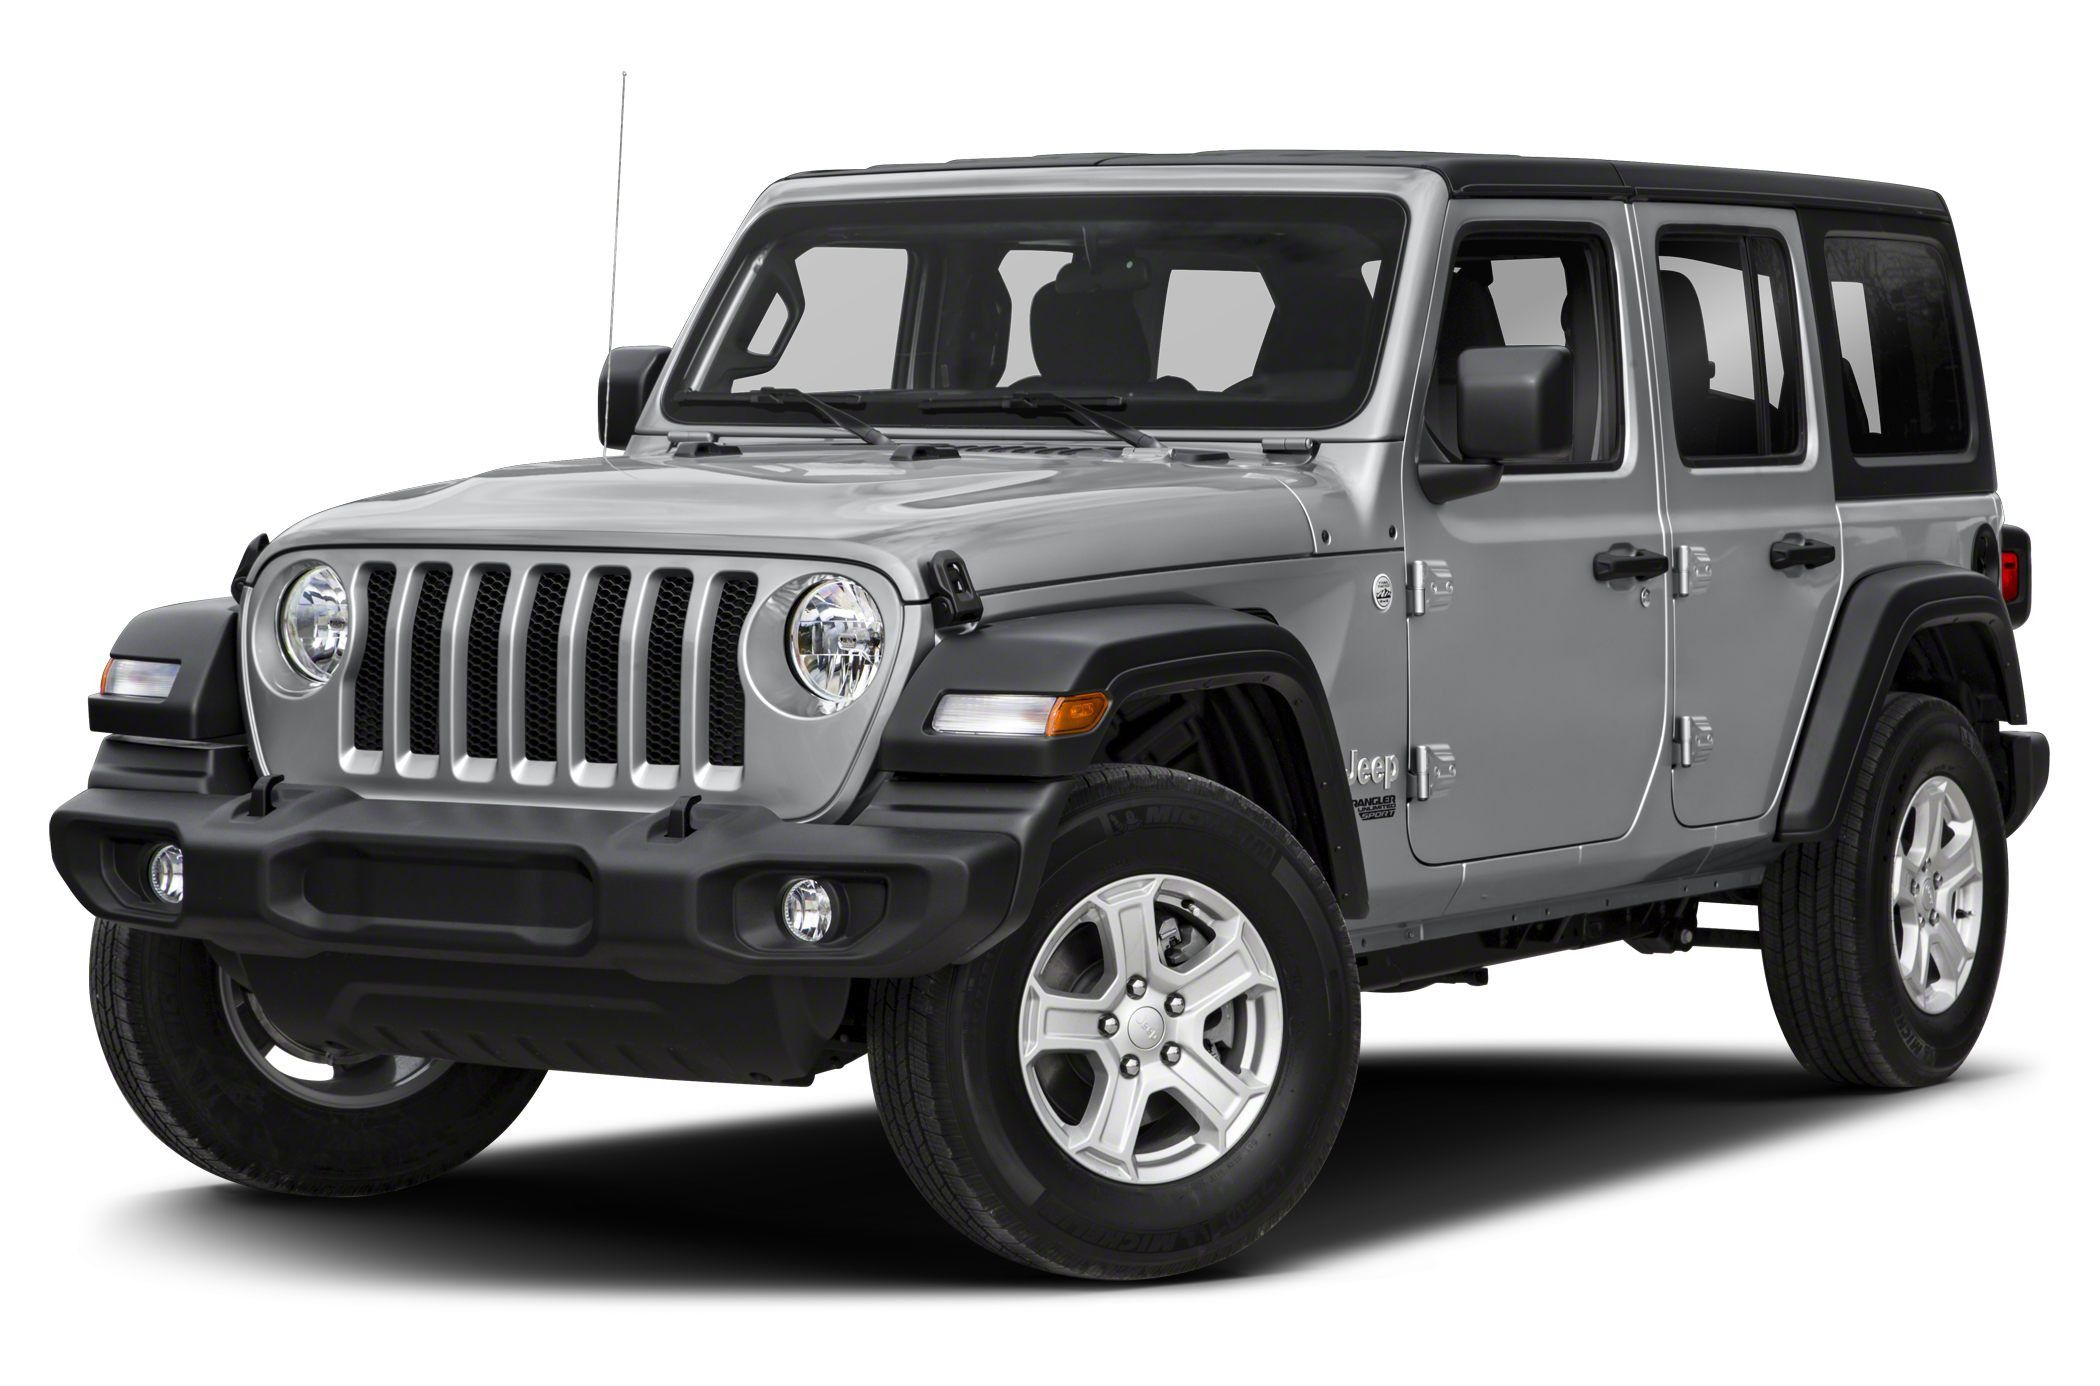 2019 Jeep Wrangler Unlimited Jeep Wrangler Unlimited Jeep Wrangler Sport Jeep Wrangler Unlimited Sahara